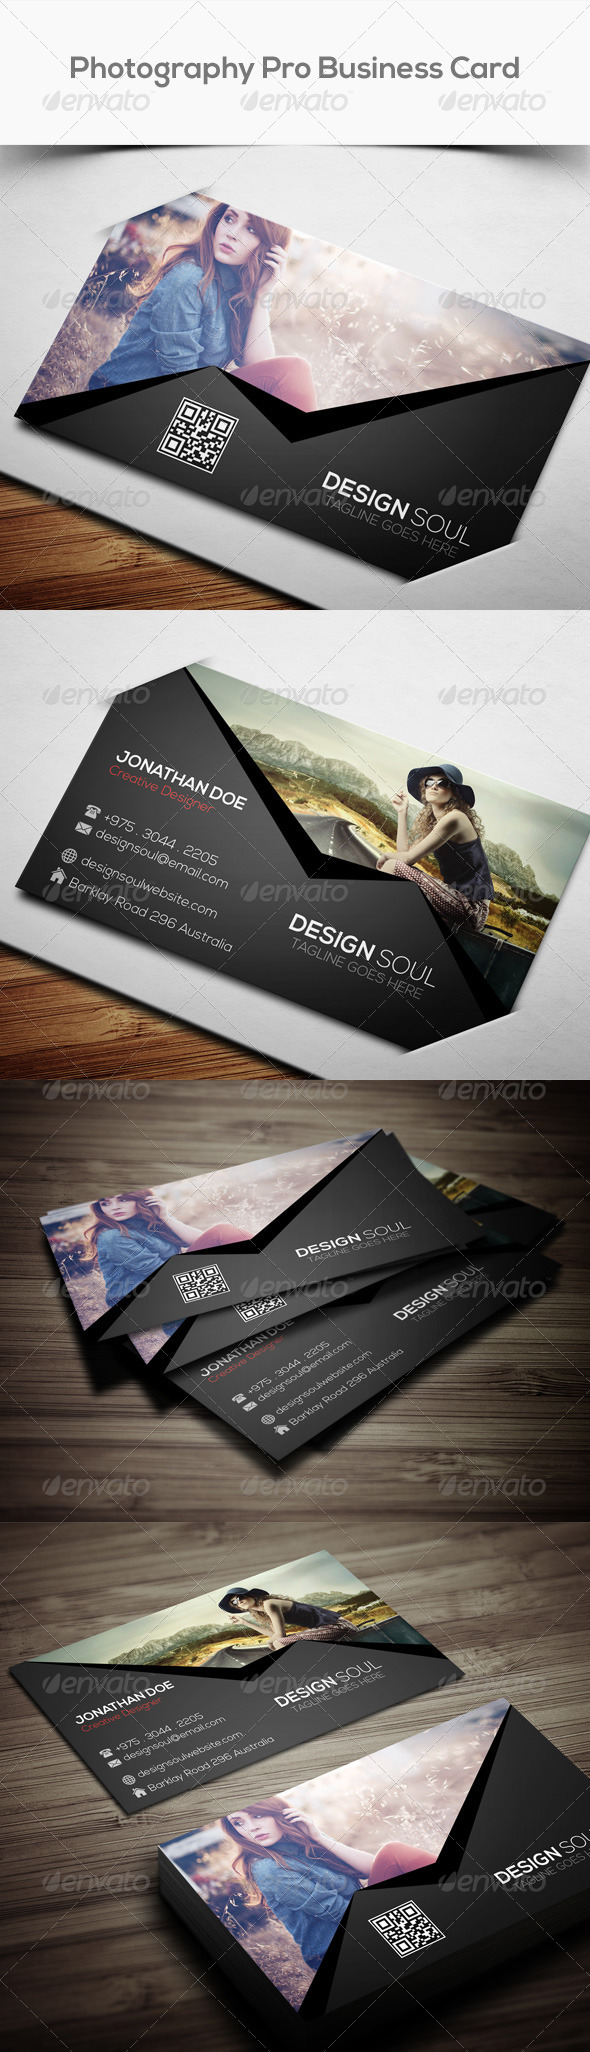 GraphicRiver Photography Pro Business Card 8097798